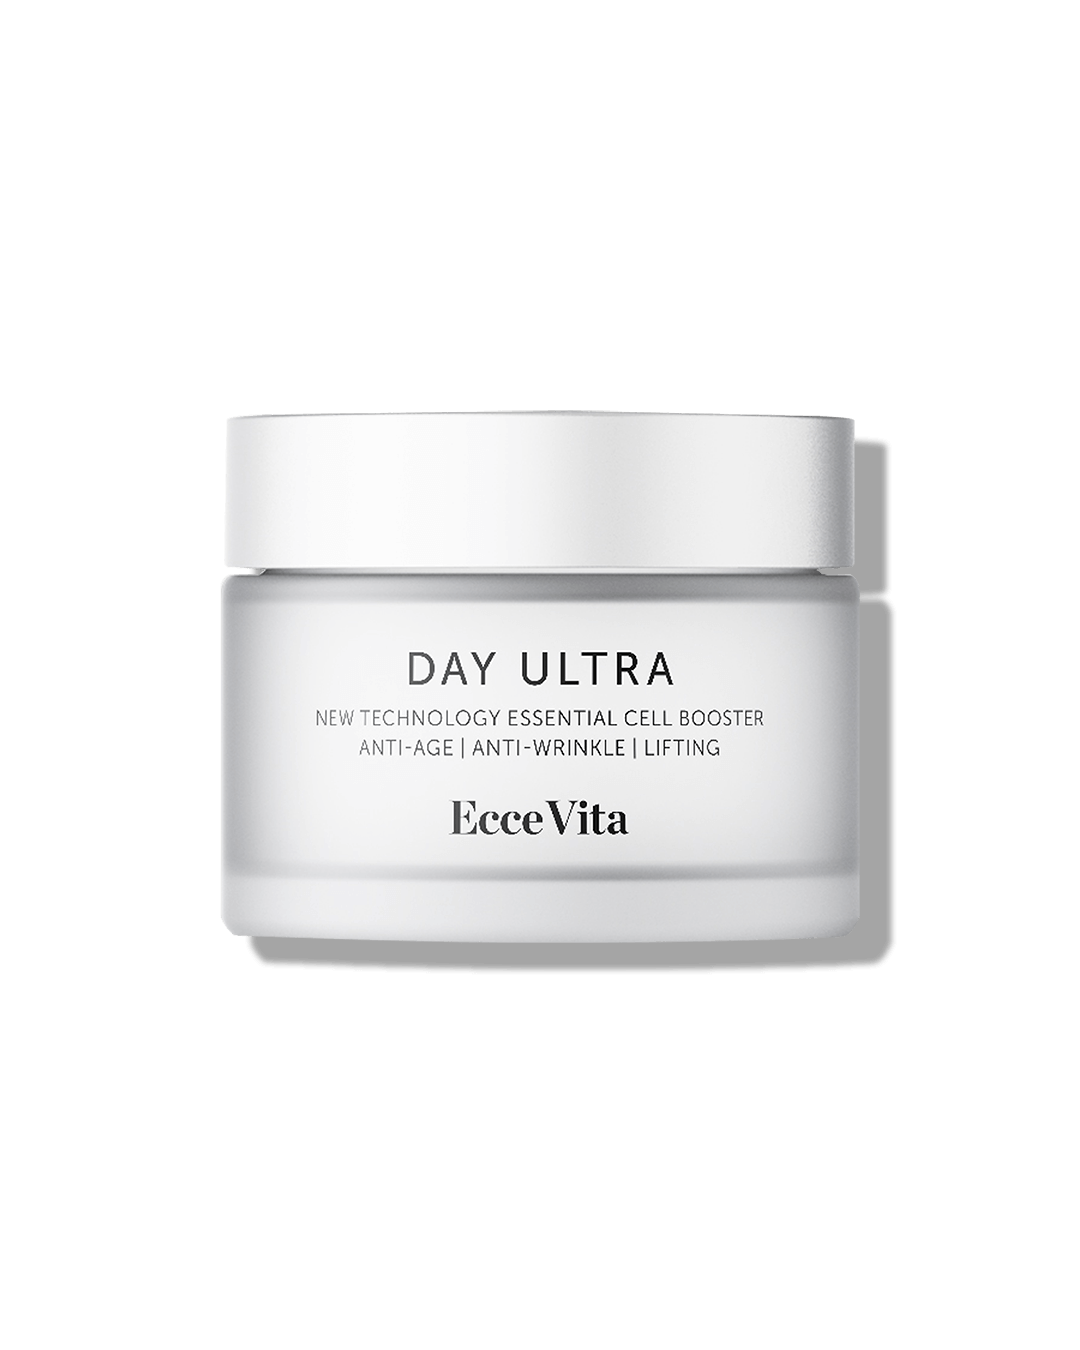 DayUltra Cream